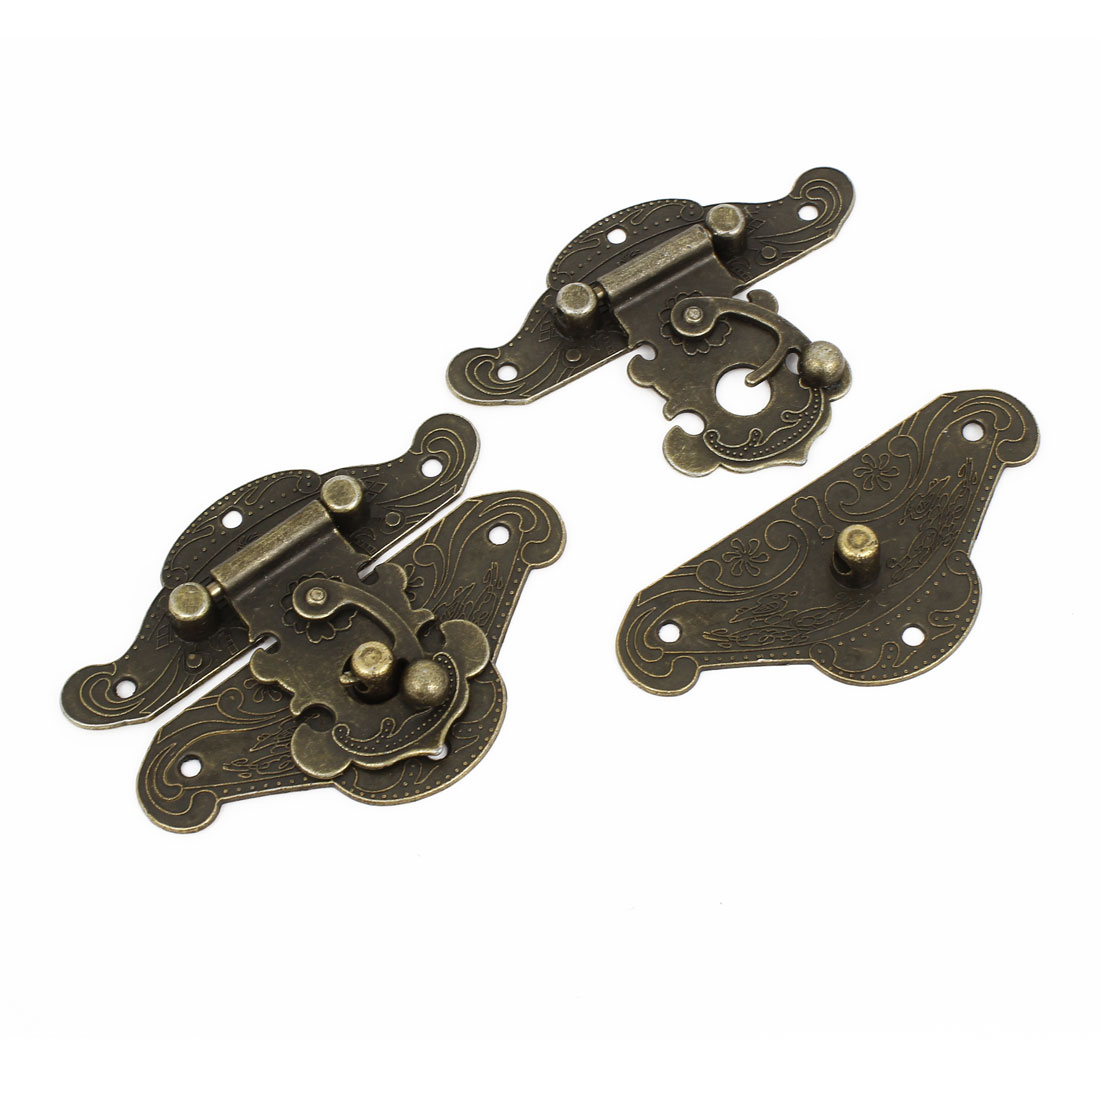 2 Pcs Antique Wood Box Latch Sets Case Locking Hinge Bronze Tone 8cm Long